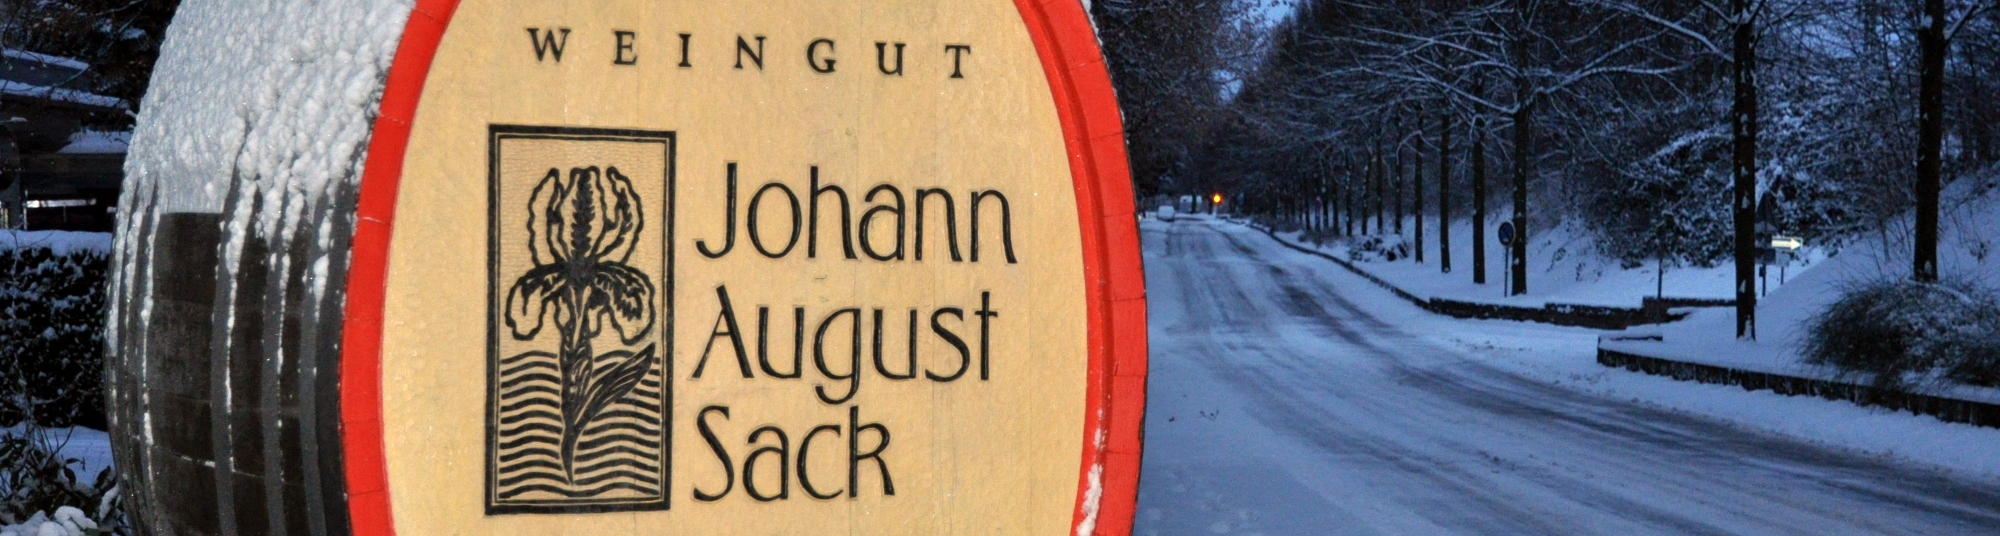 Weingut Johann August Sack - Winter 1